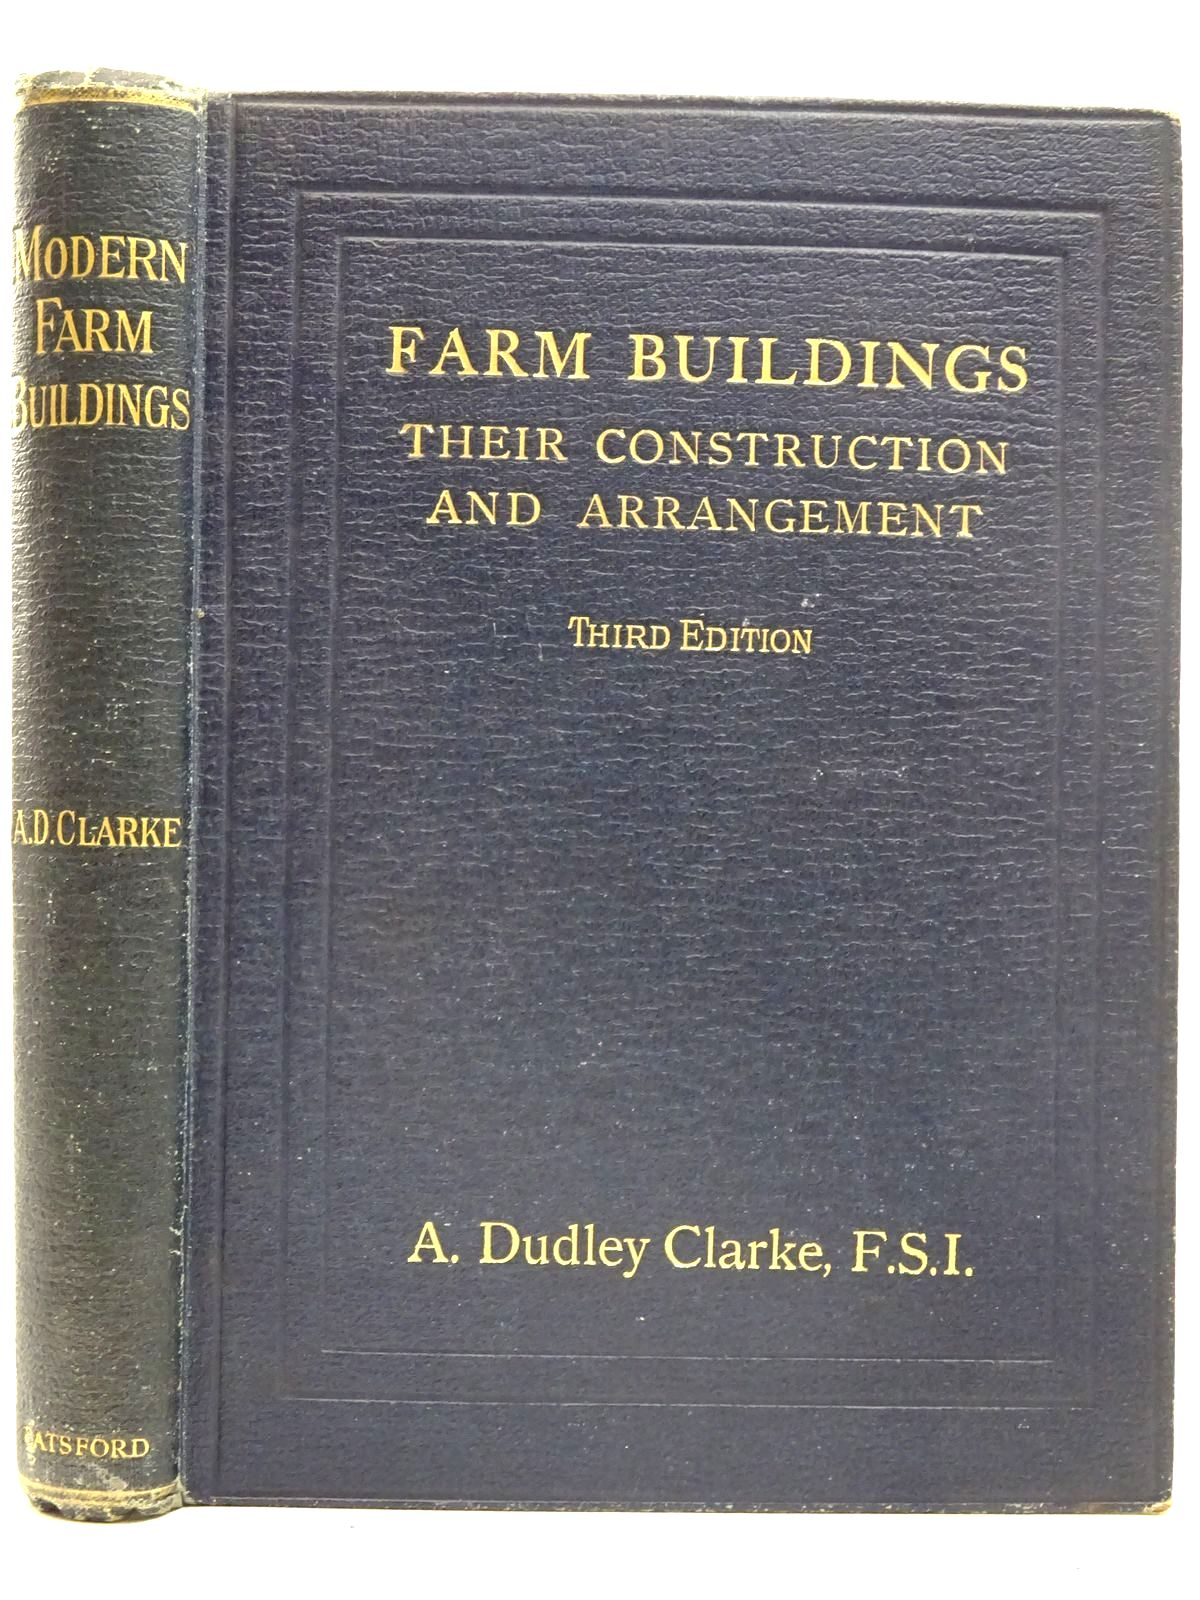 Photo of MODERN FARM BUILDINGS written by Clarke, A. Dudley published by B.T. Batsford (STOCK CODE: 2126551)  for sale by Stella & Rose's Books